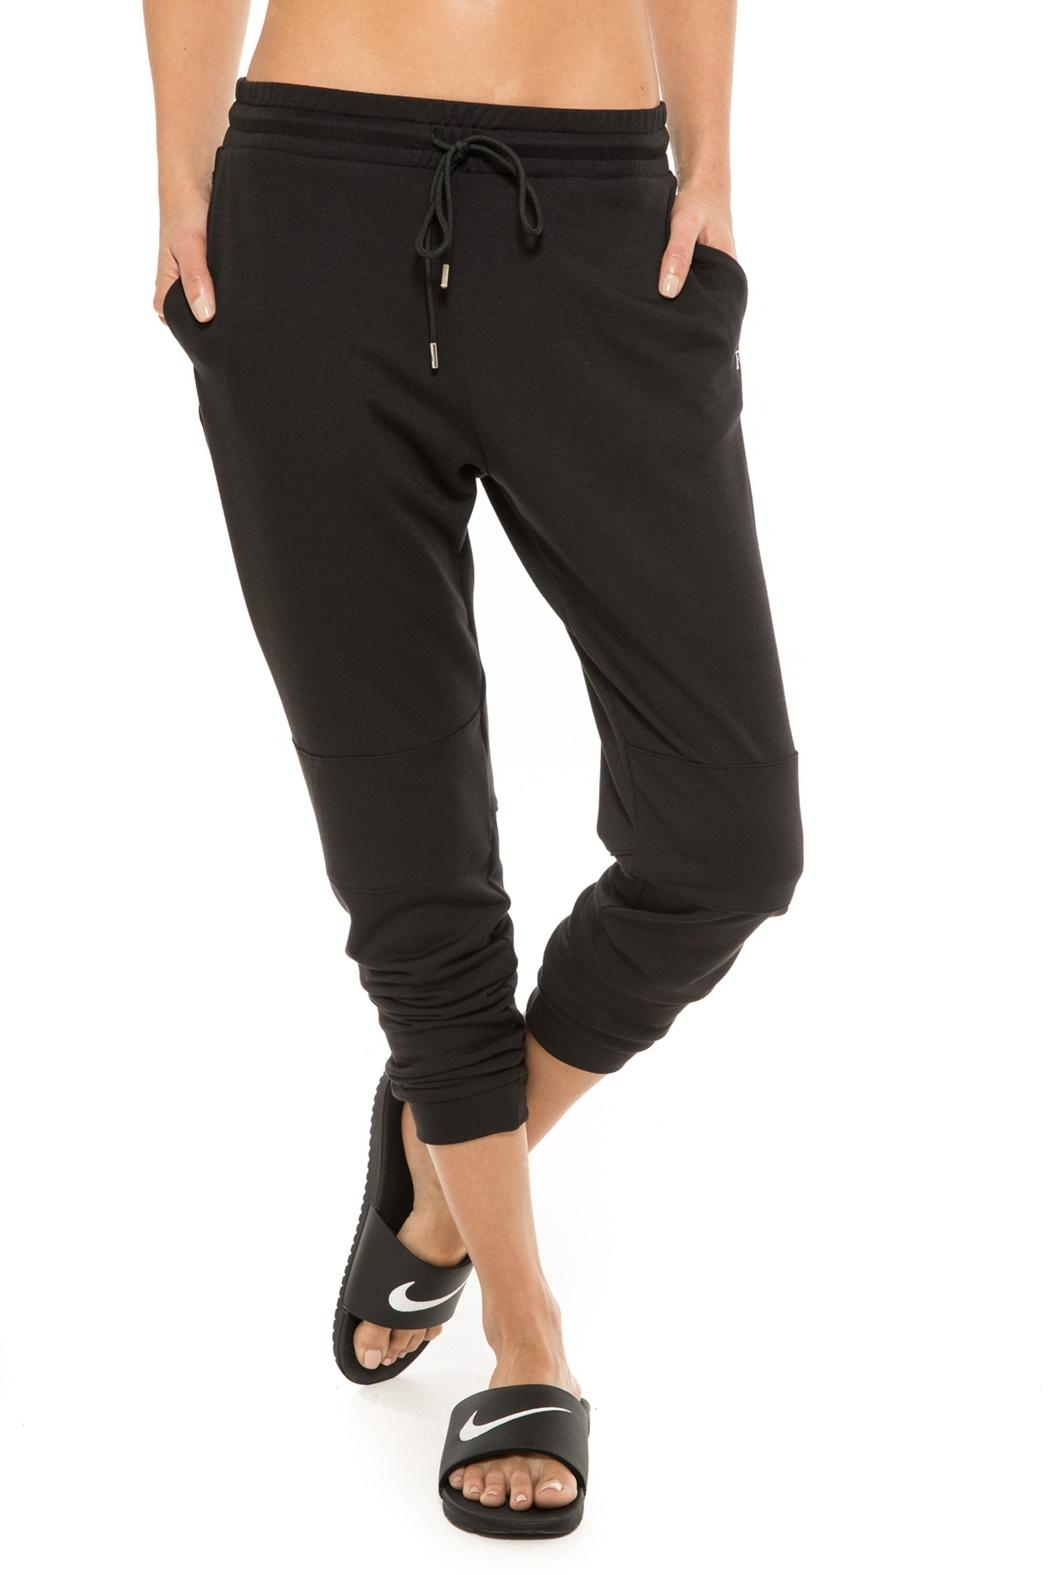 Body Language Juno Sweat Pant - Main Image